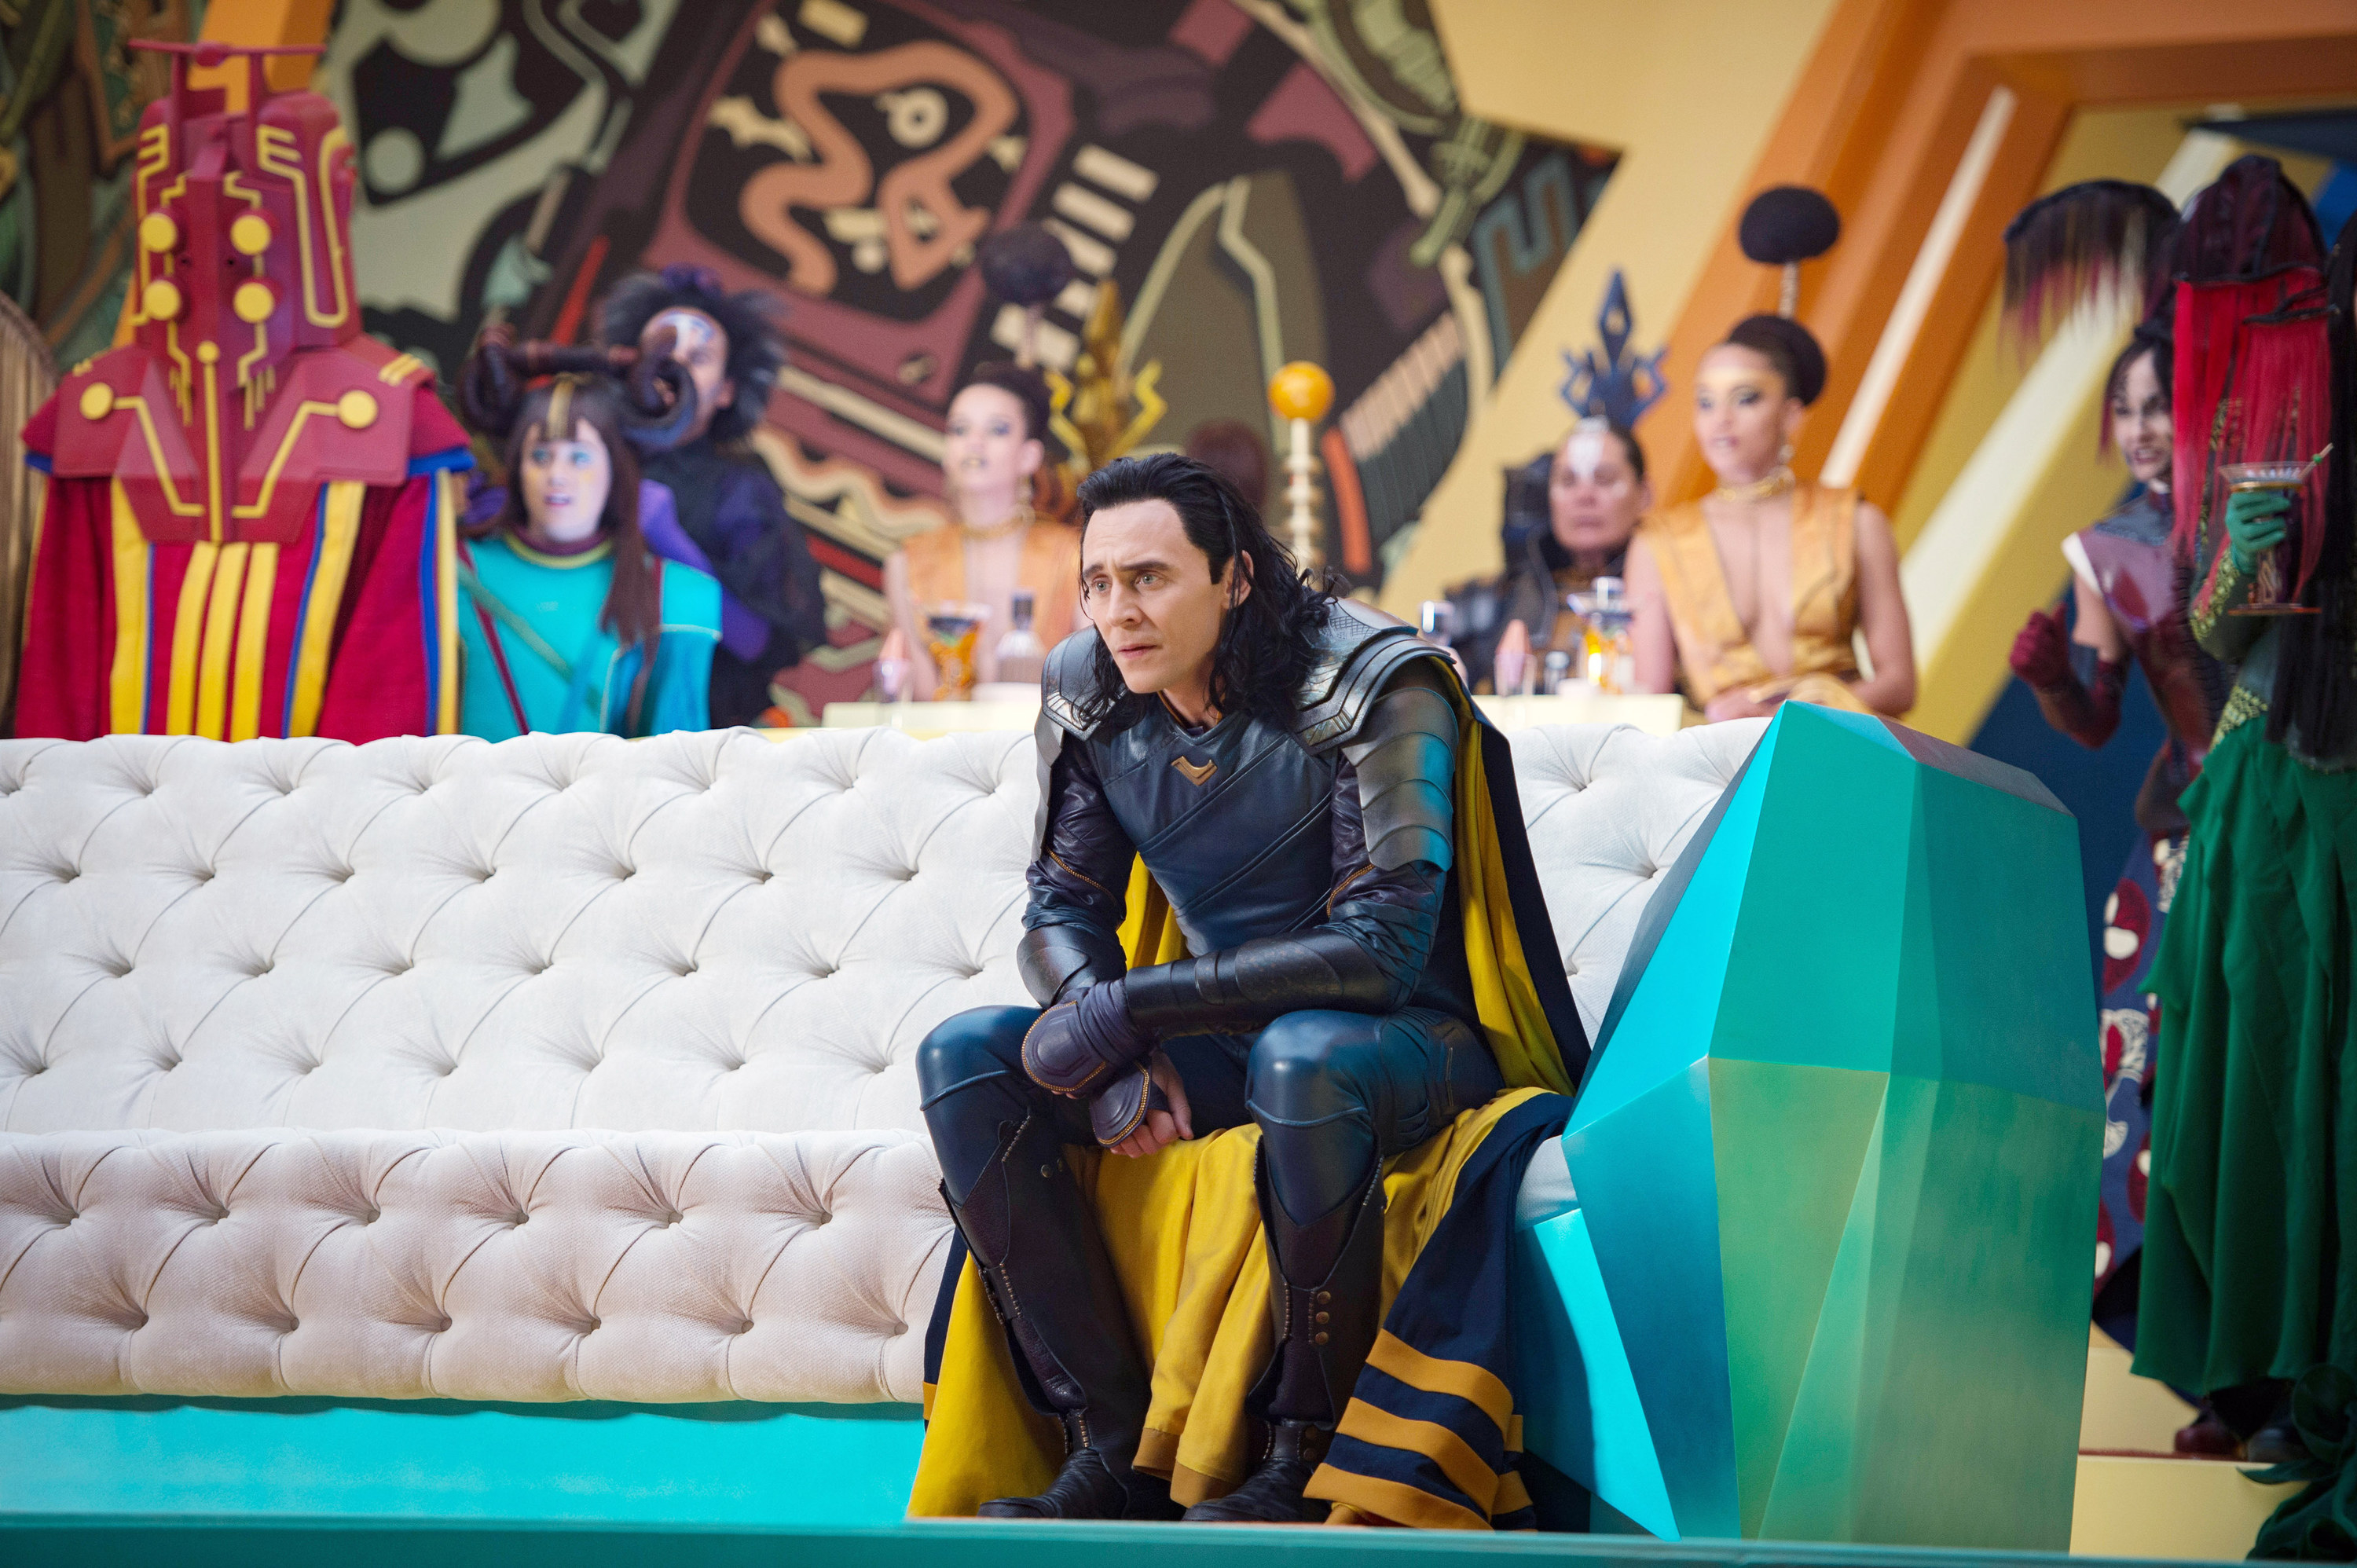 Loki sitting on a couch in a blue outfit